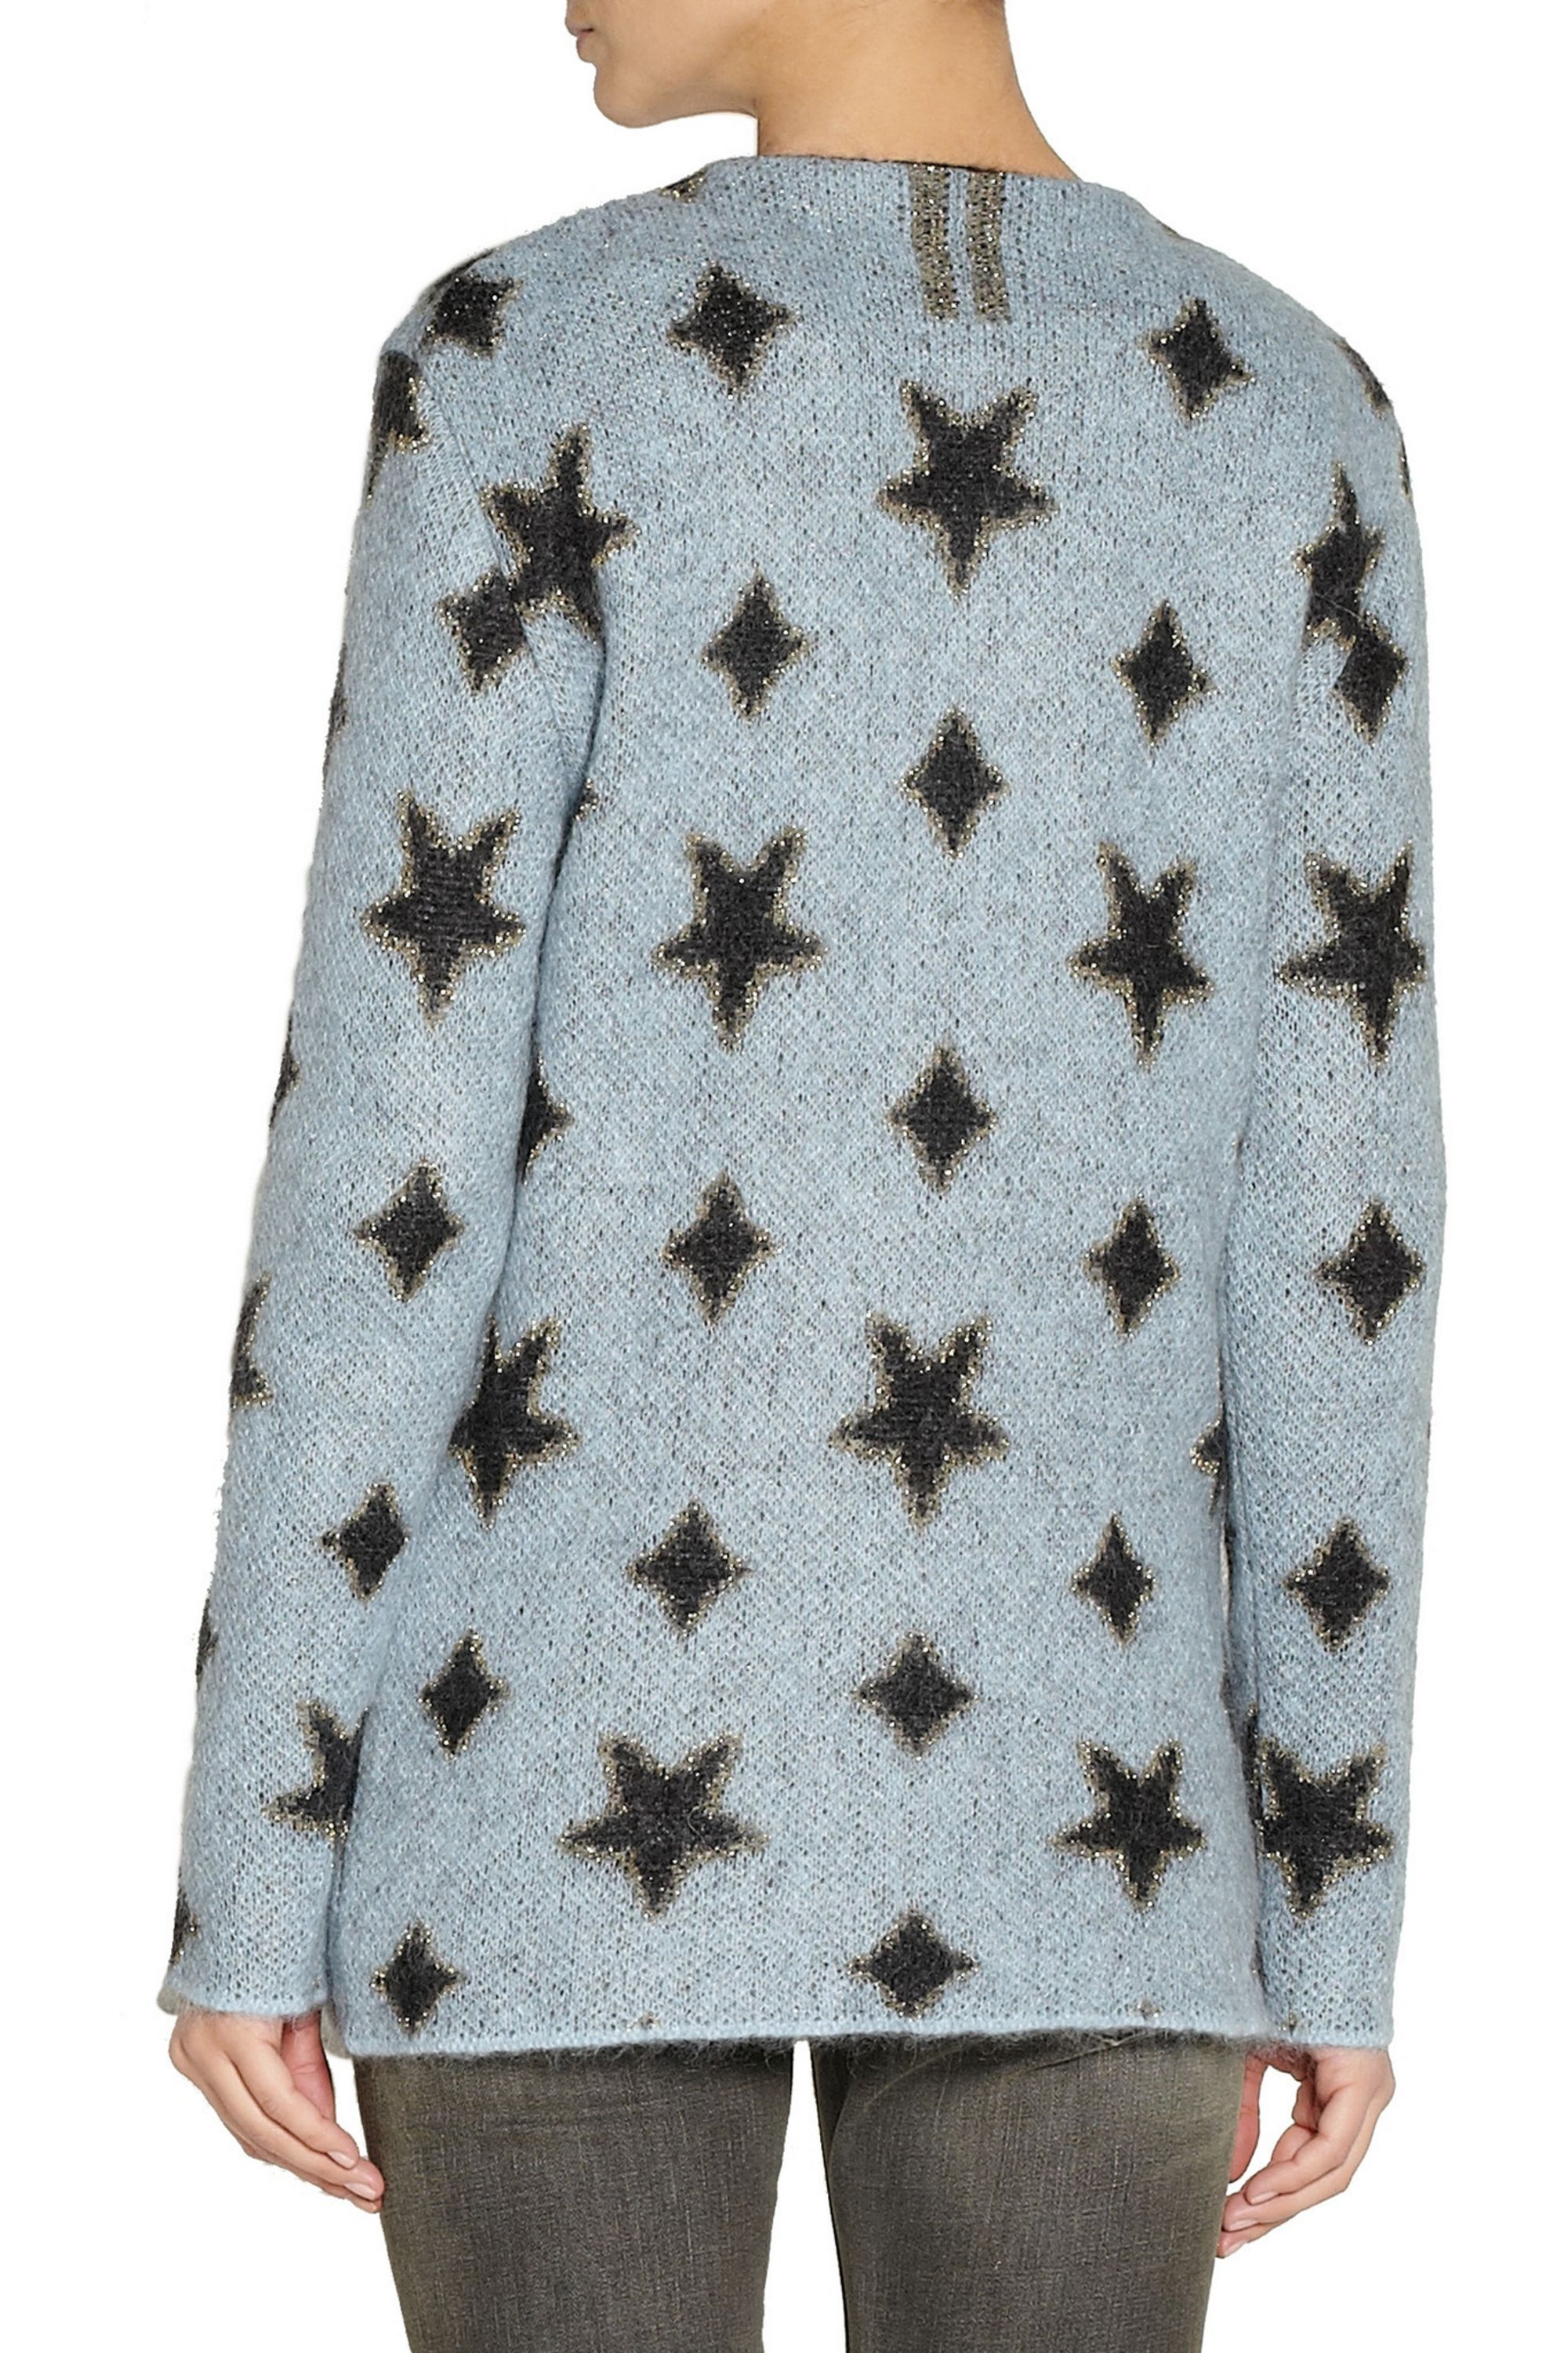 SAINT LAURENT Star-patterned knitted cardigan